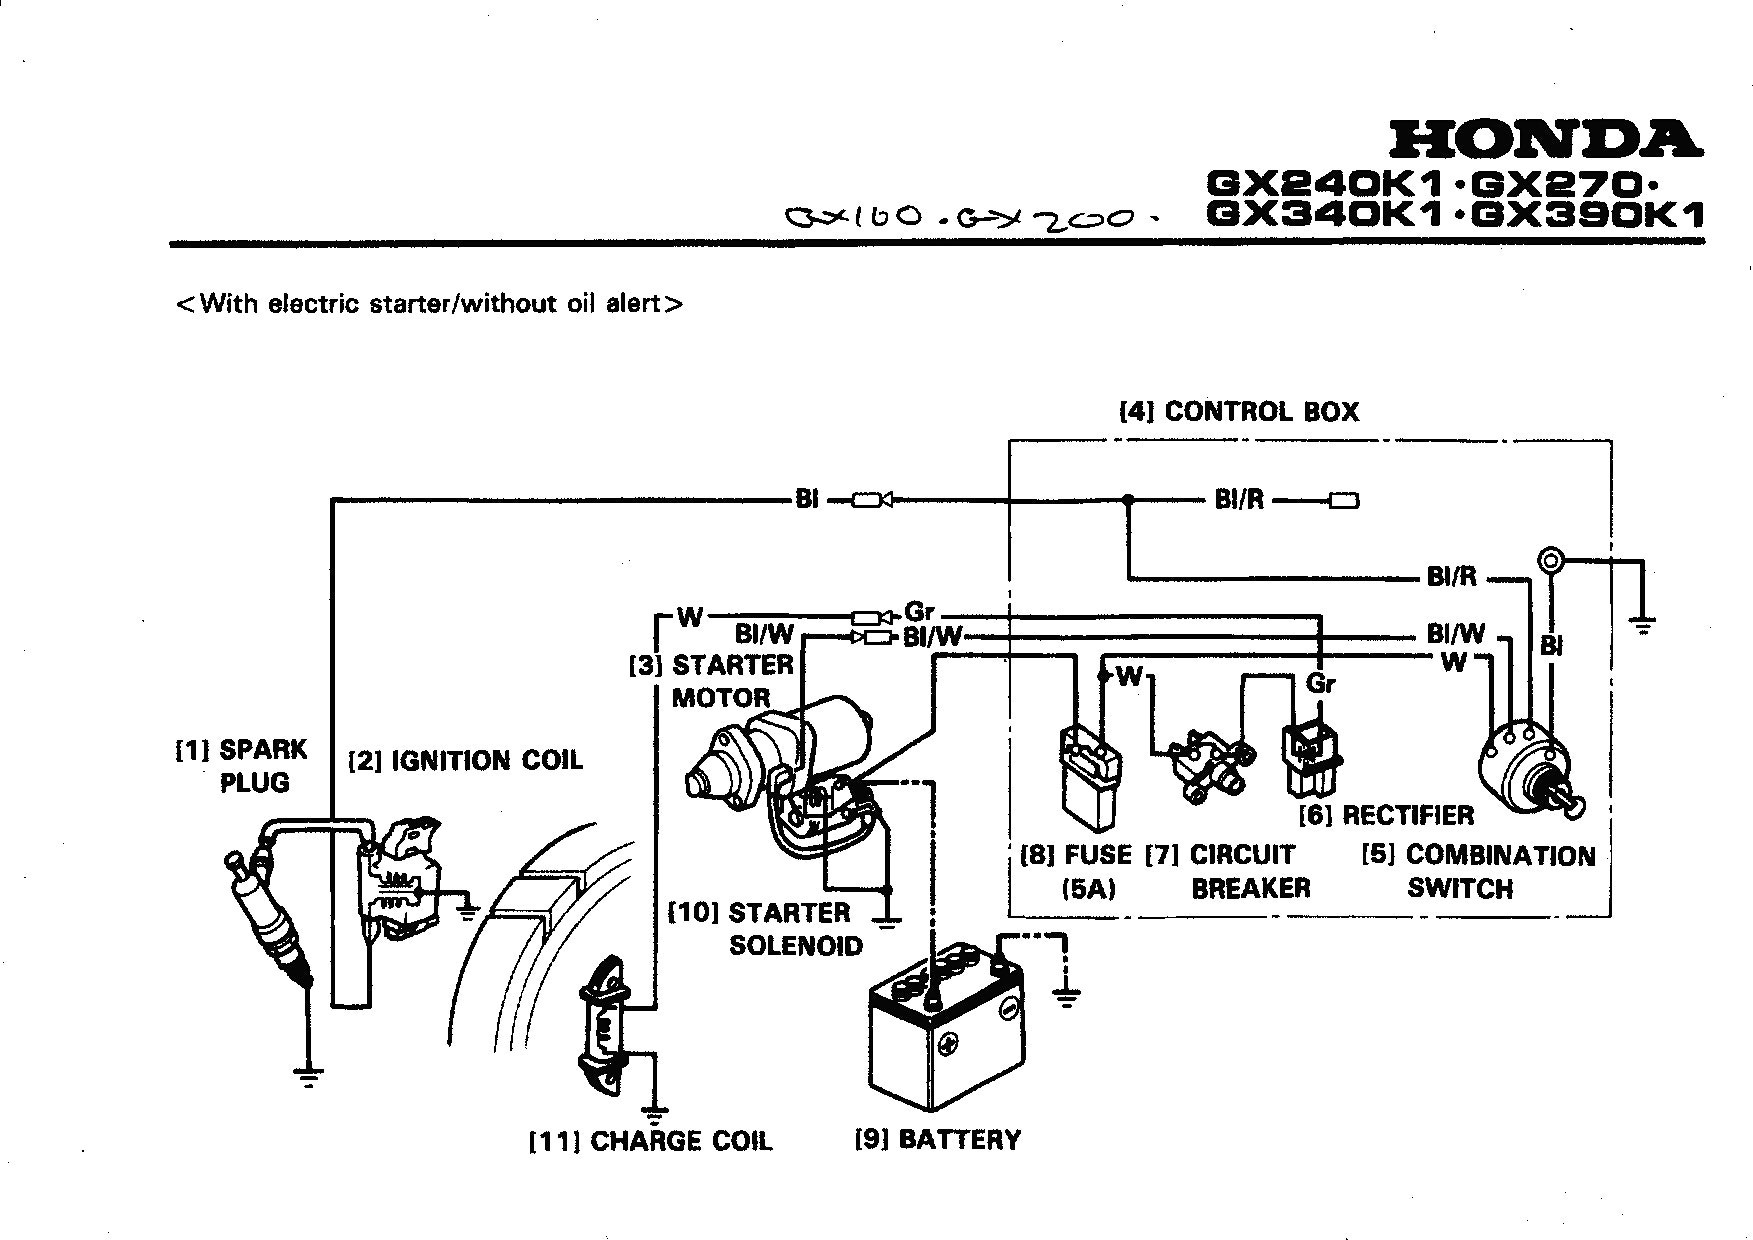 engine key switch wiring diagram honda zook    wiring       diagram    camizu org  honda zook    wiring       diagram    camizu org